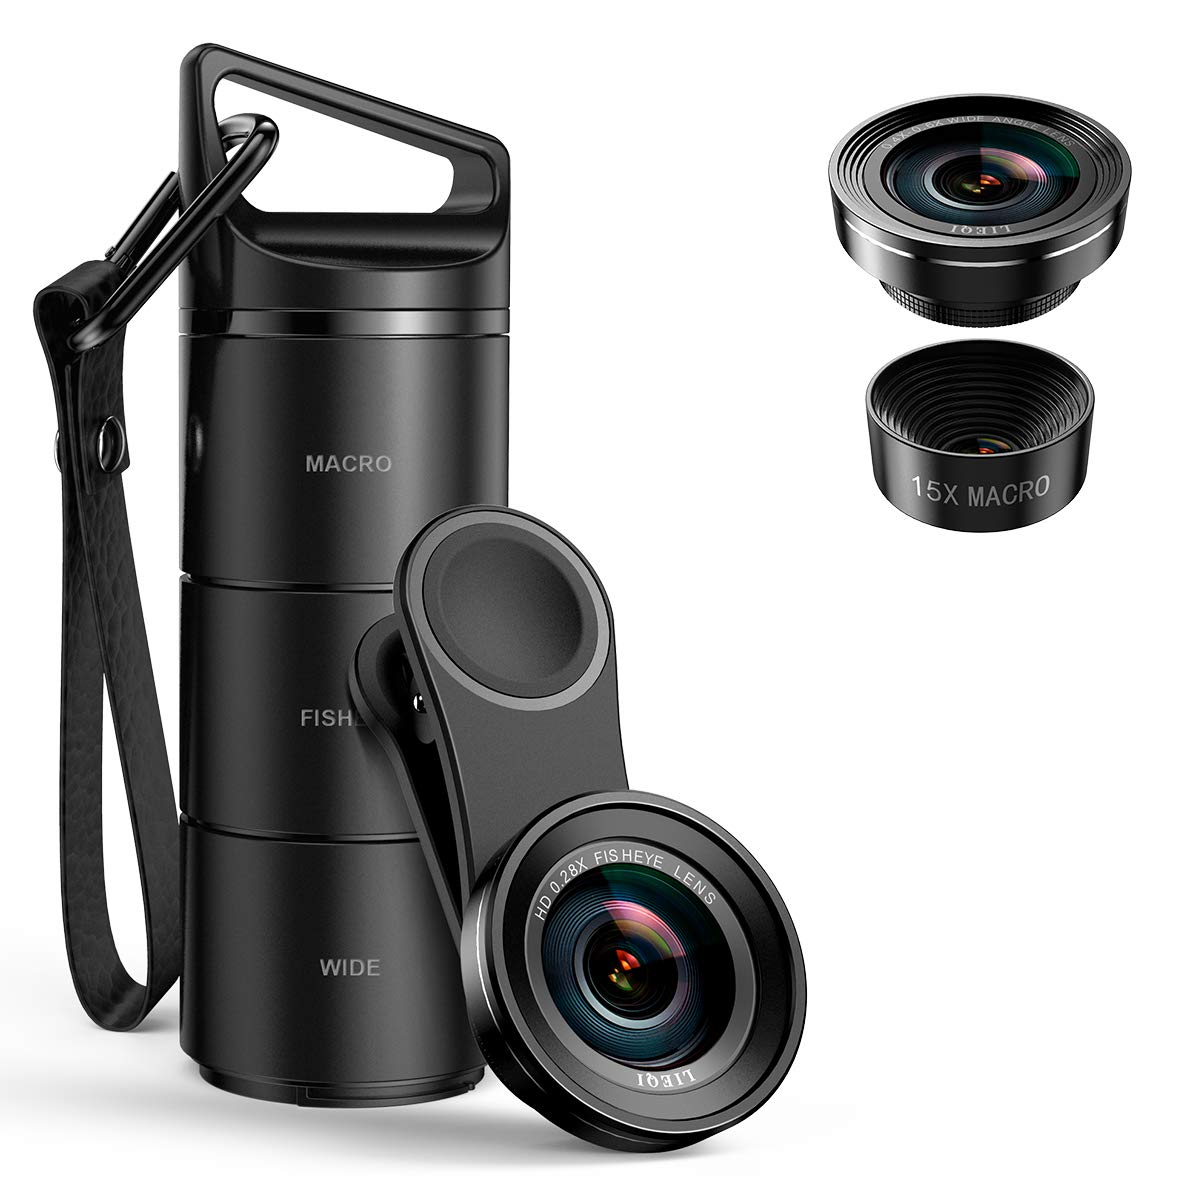 (Upgraded Version) Criacr Phone Camera Lens, 3 in 1 Cell Phone Lens Kit for iPhone, Samsung, 180°Fisheye Lens, 0.6X Wide Angle Lens, 15X Macro Lens, for iPhone 7 Plus, 8, and Most Smartphones